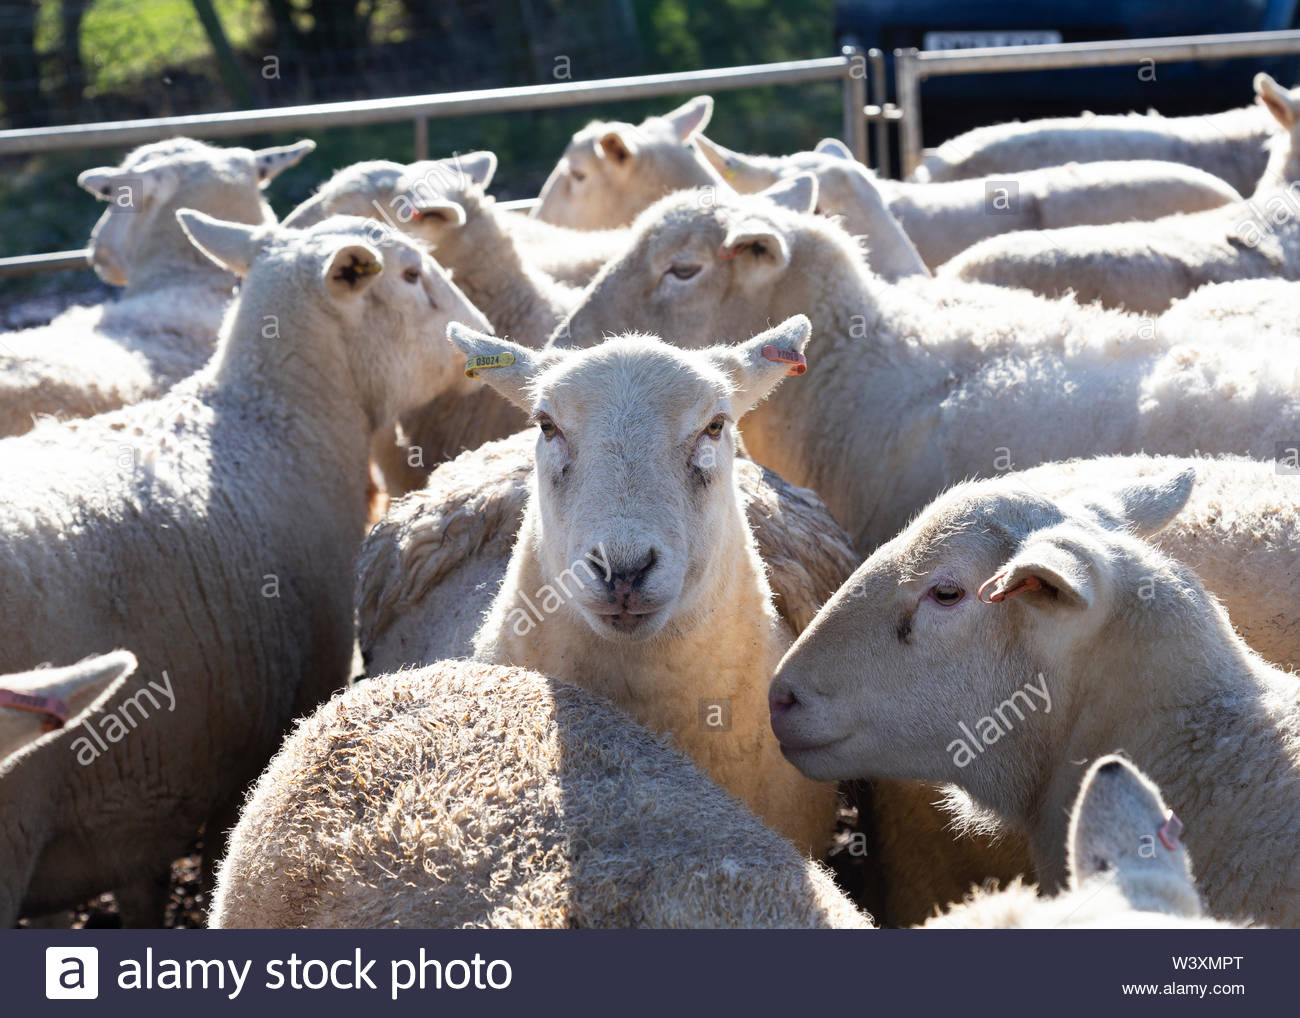 Sheep ready for market in Warwickshire UK - Stock Image